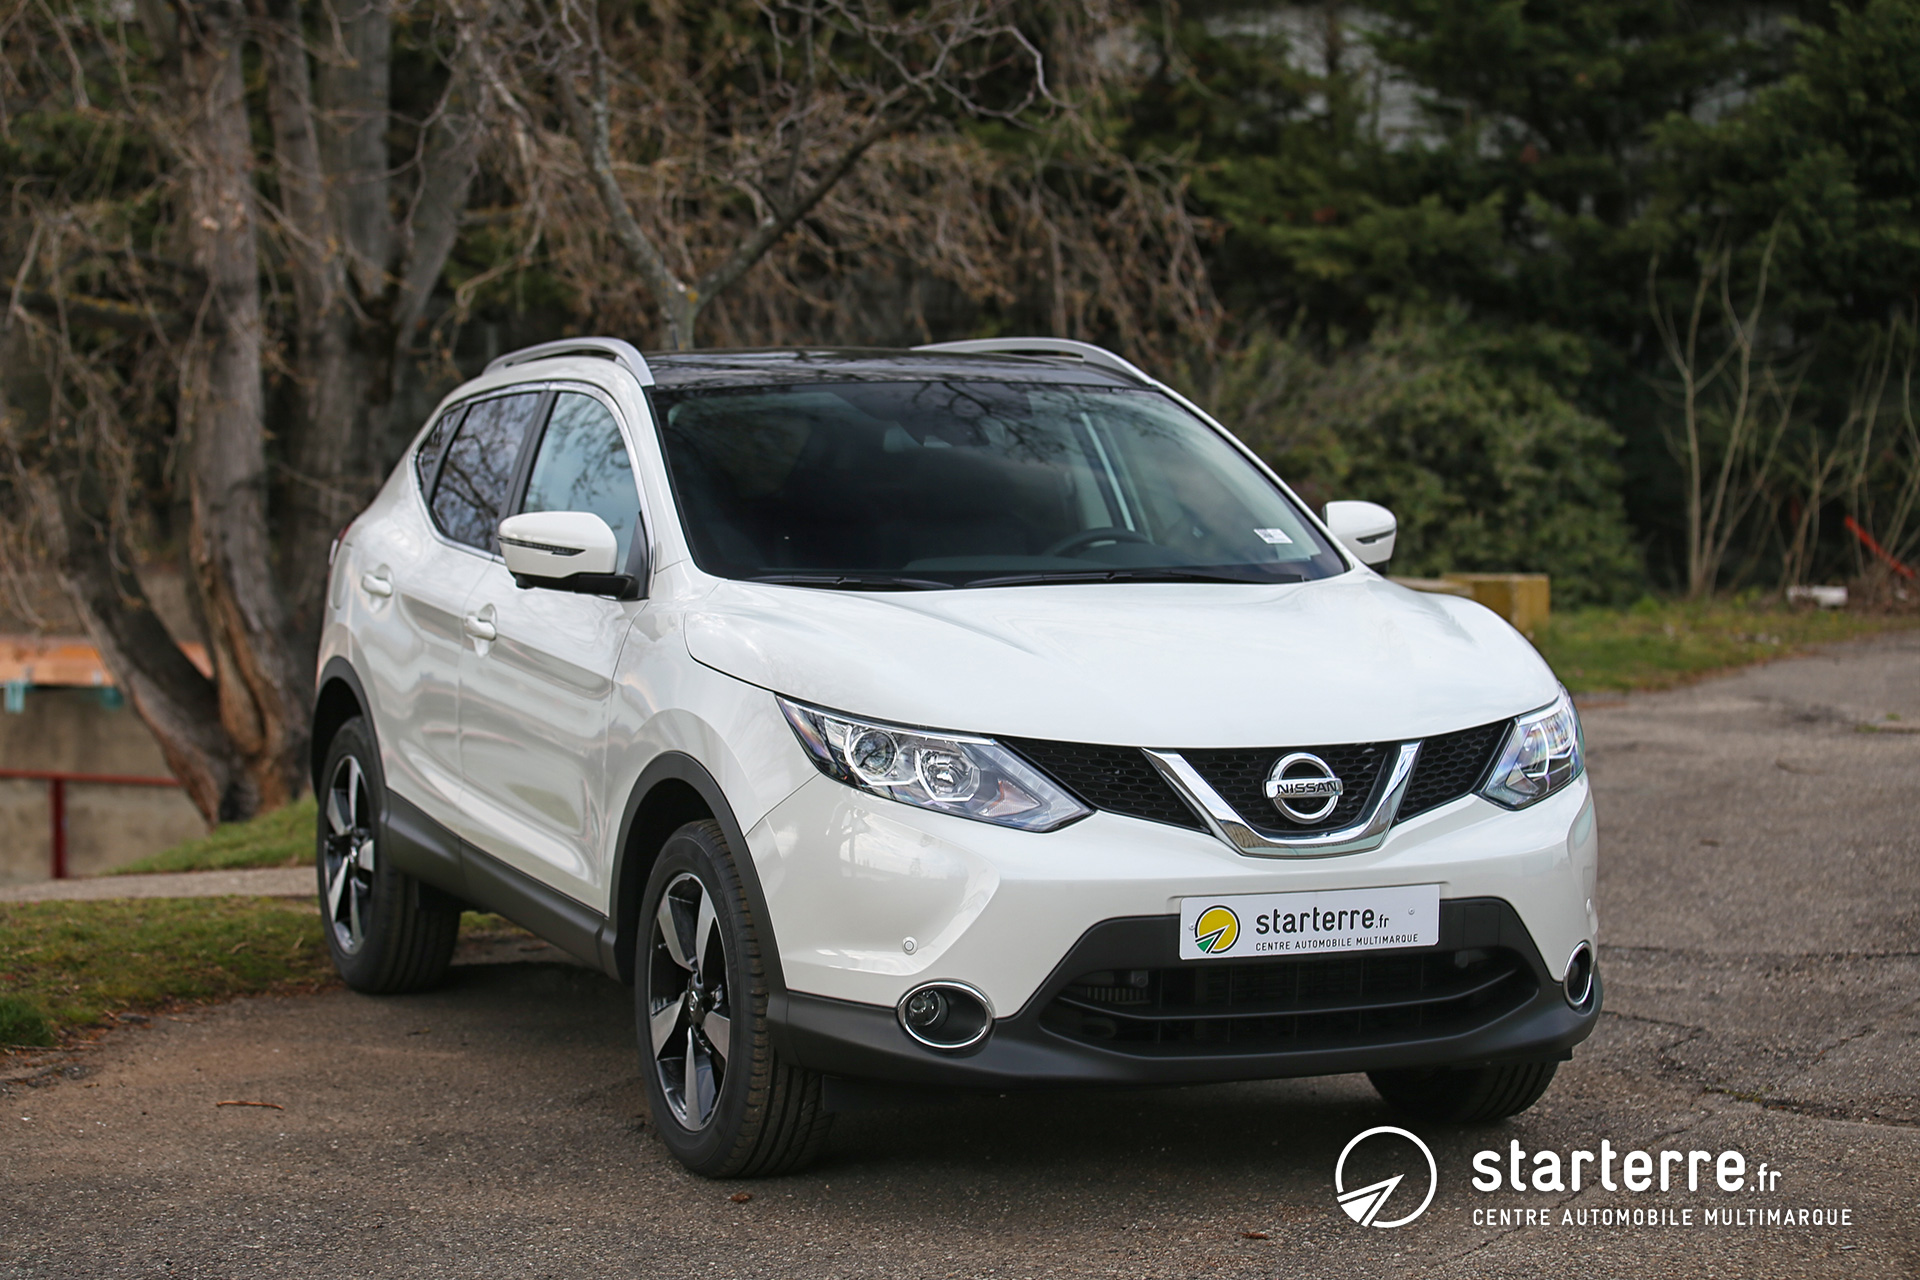 nissan qashqai 1 6 dci 130 all mode 4x4 i connect edition pr sentation v hicule. Black Bedroom Furniture Sets. Home Design Ideas